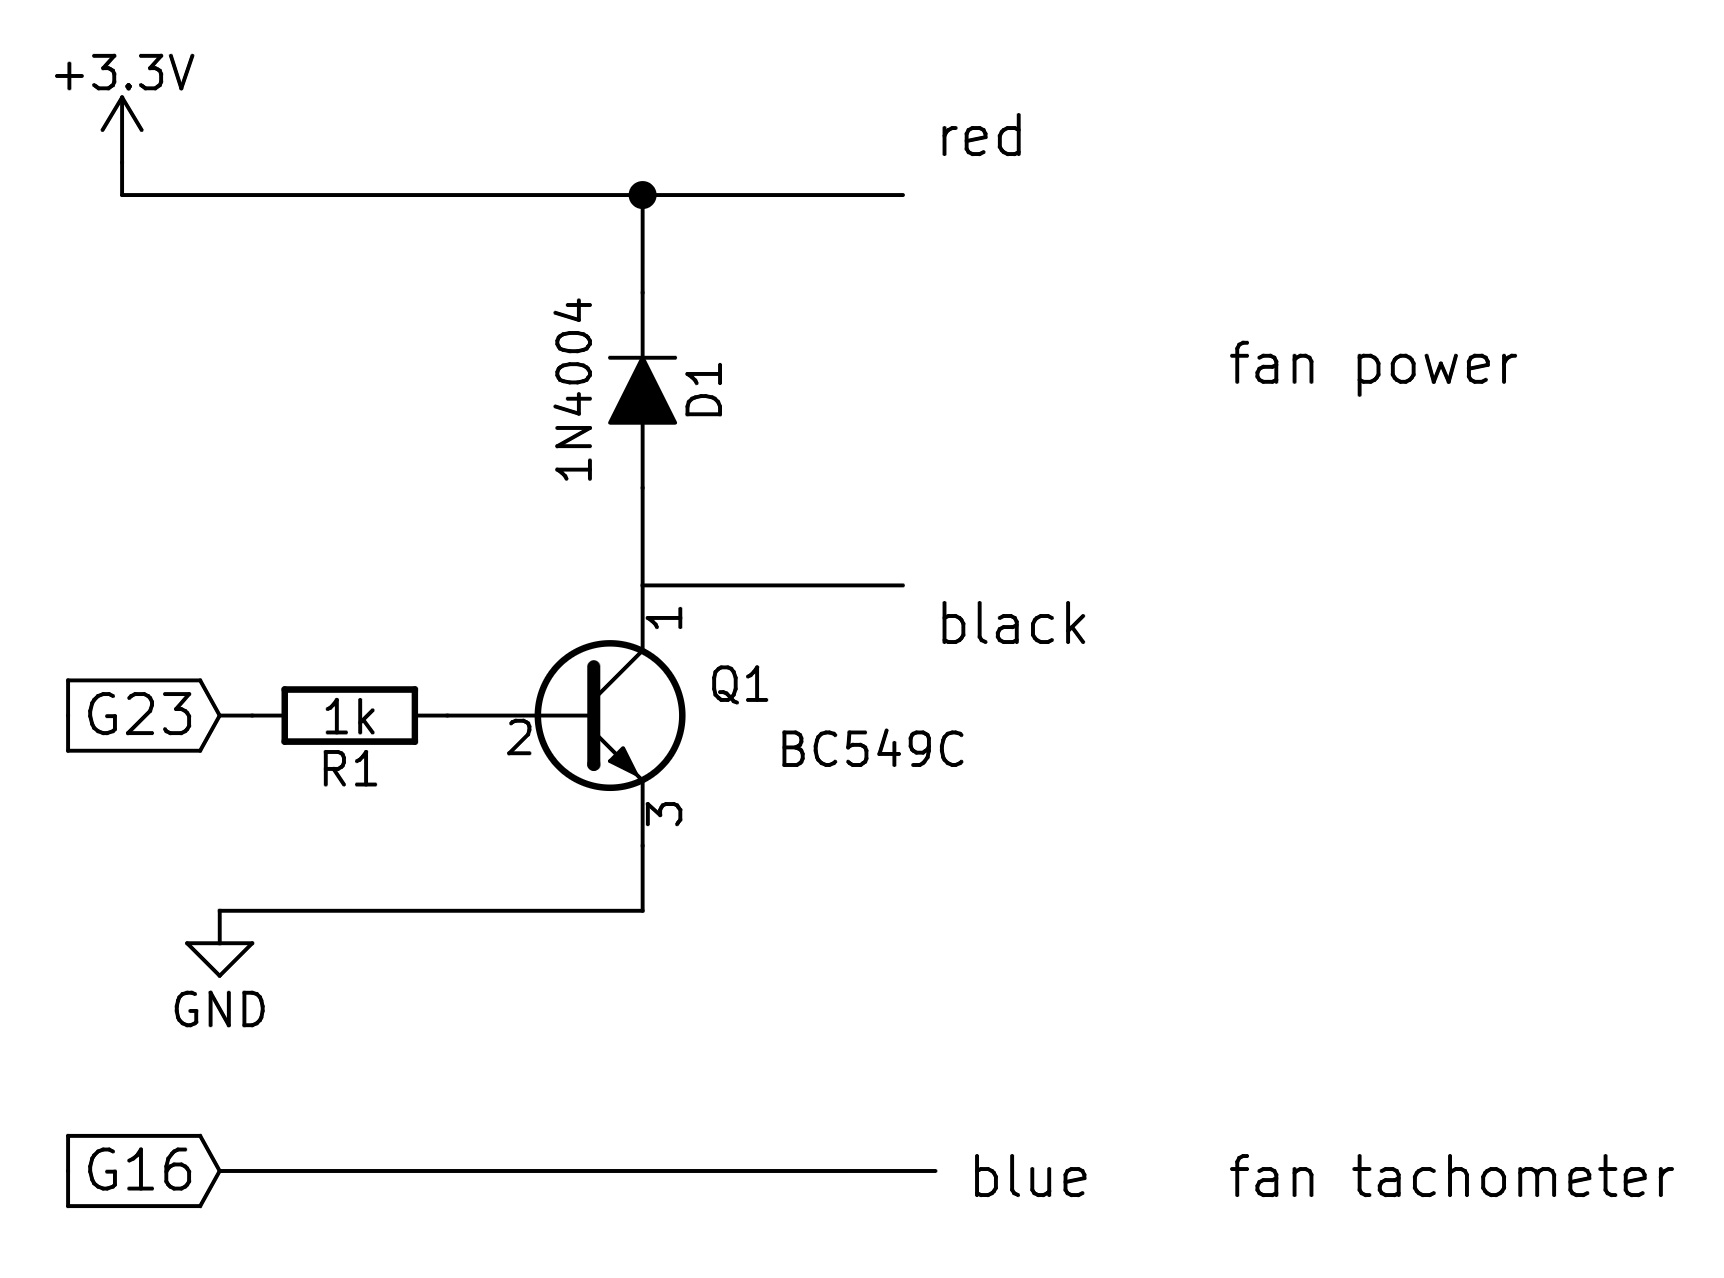 wiring 3w homebridge pwm fan pwm fan wiring diagram at n-0.co